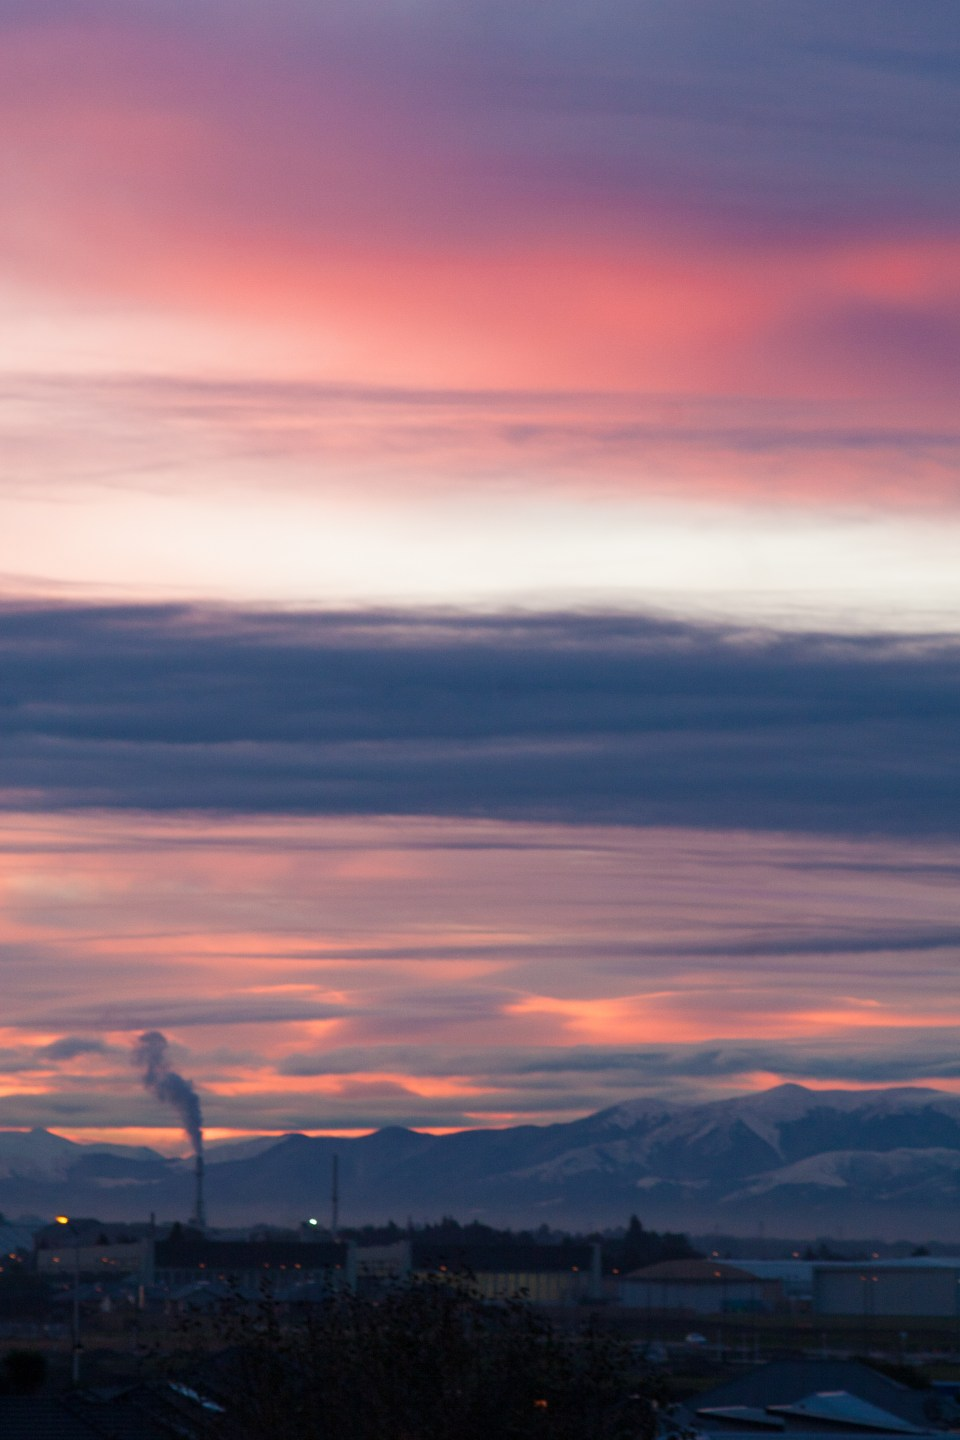 smoke stack against mountains and a pink sunset